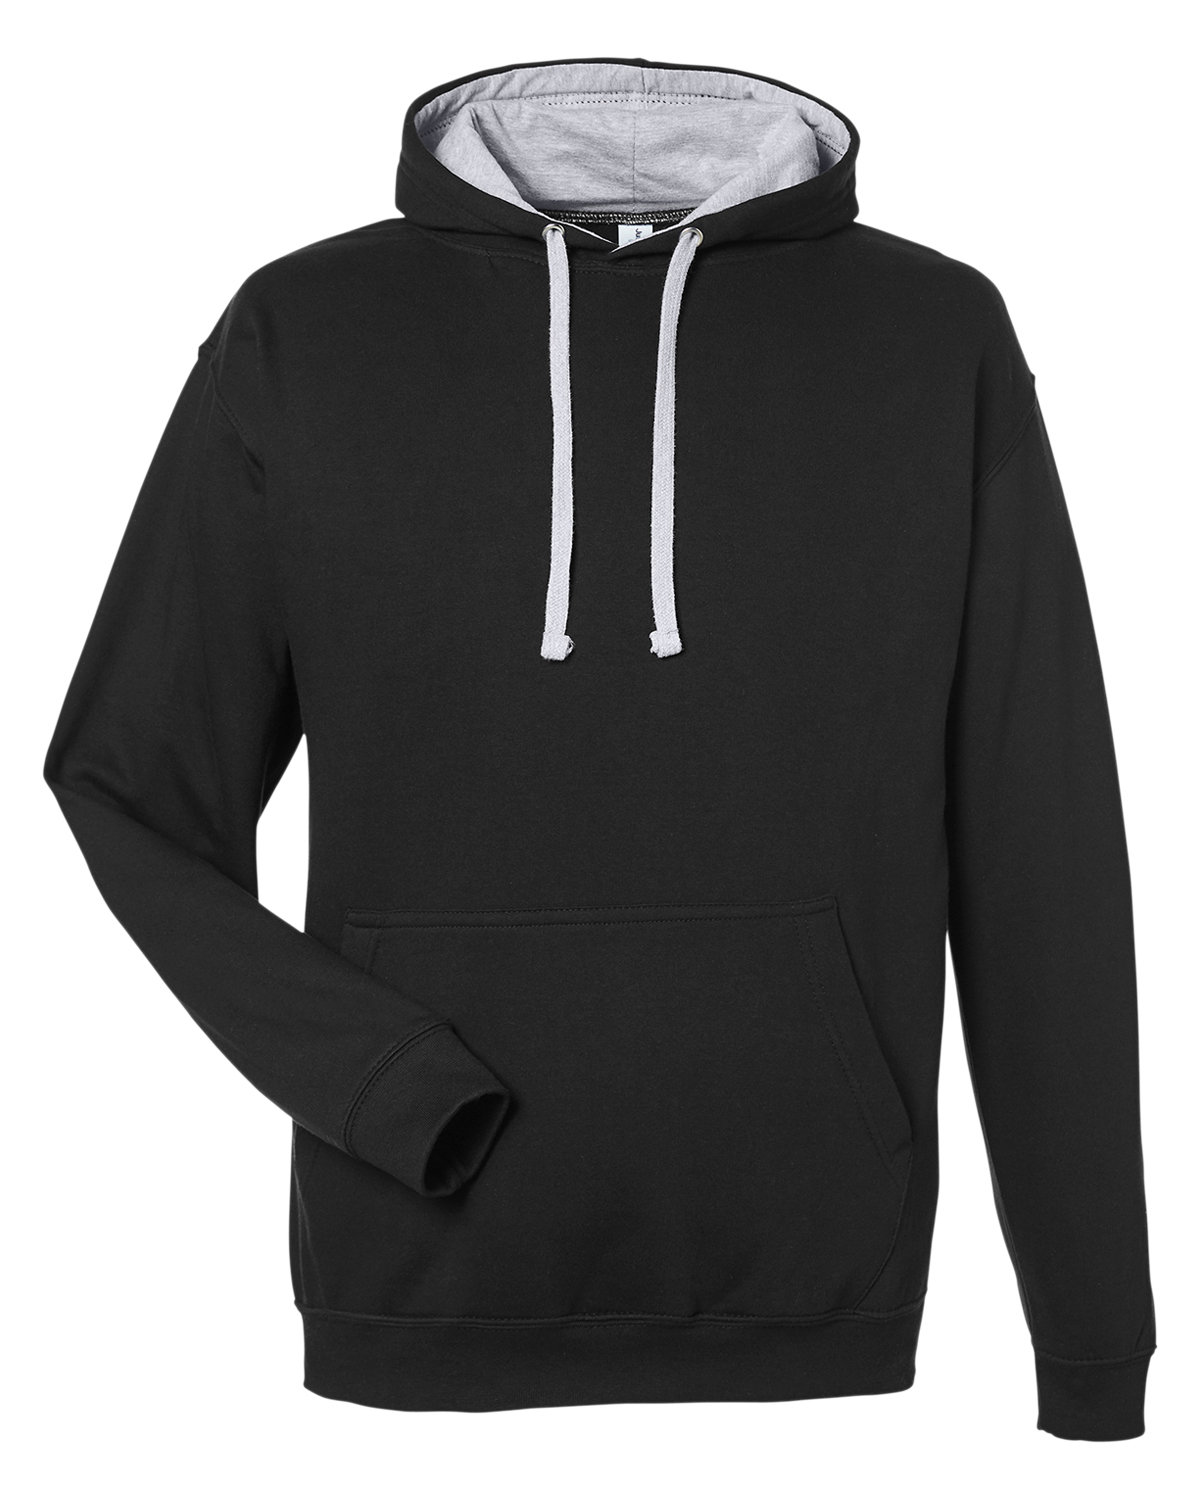 Just Hoods By AWDis Adult 80/20 Midweight Varsity Contrast Hooded Sweatshirt JET BLK/ HTH GRY